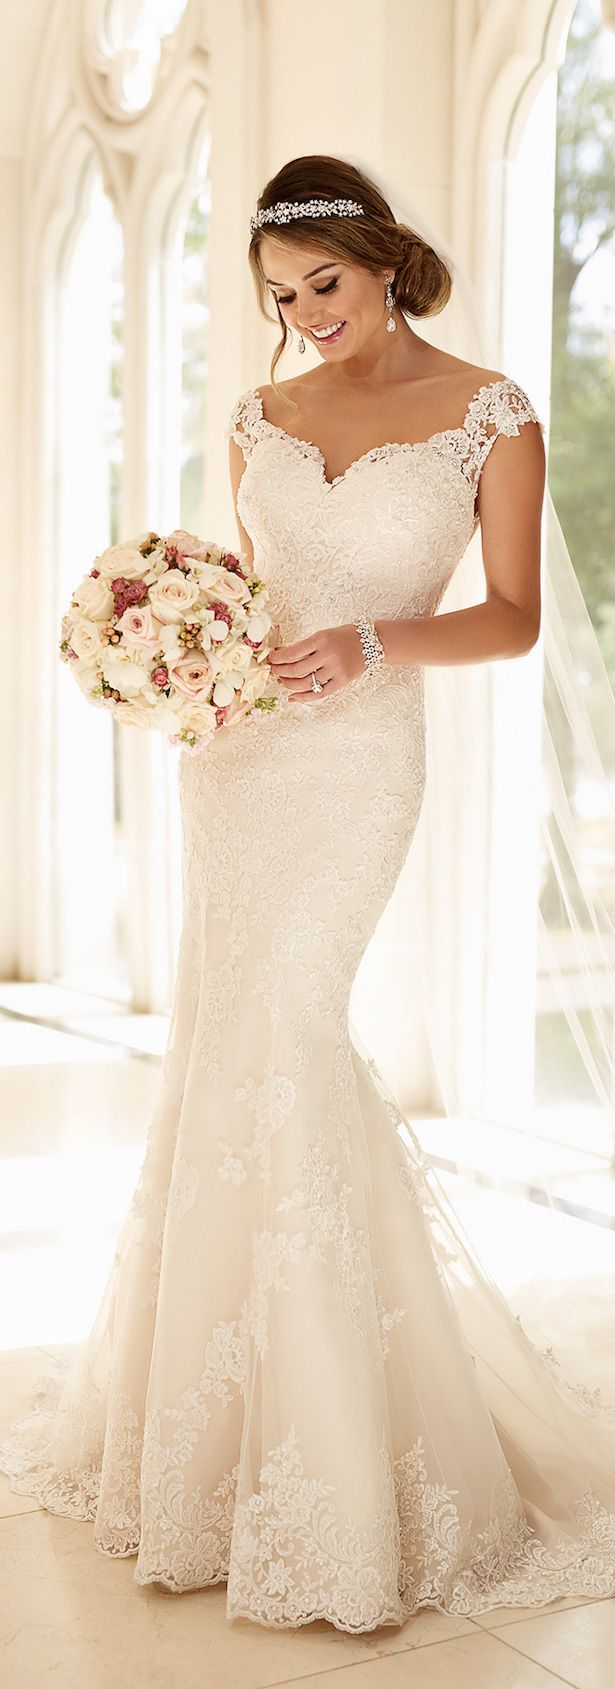 With a blend ofromanticstyle and drama in each wedding dress,Stella YorkSpring 2016 bridal collection is a fashion moment not to be missed.